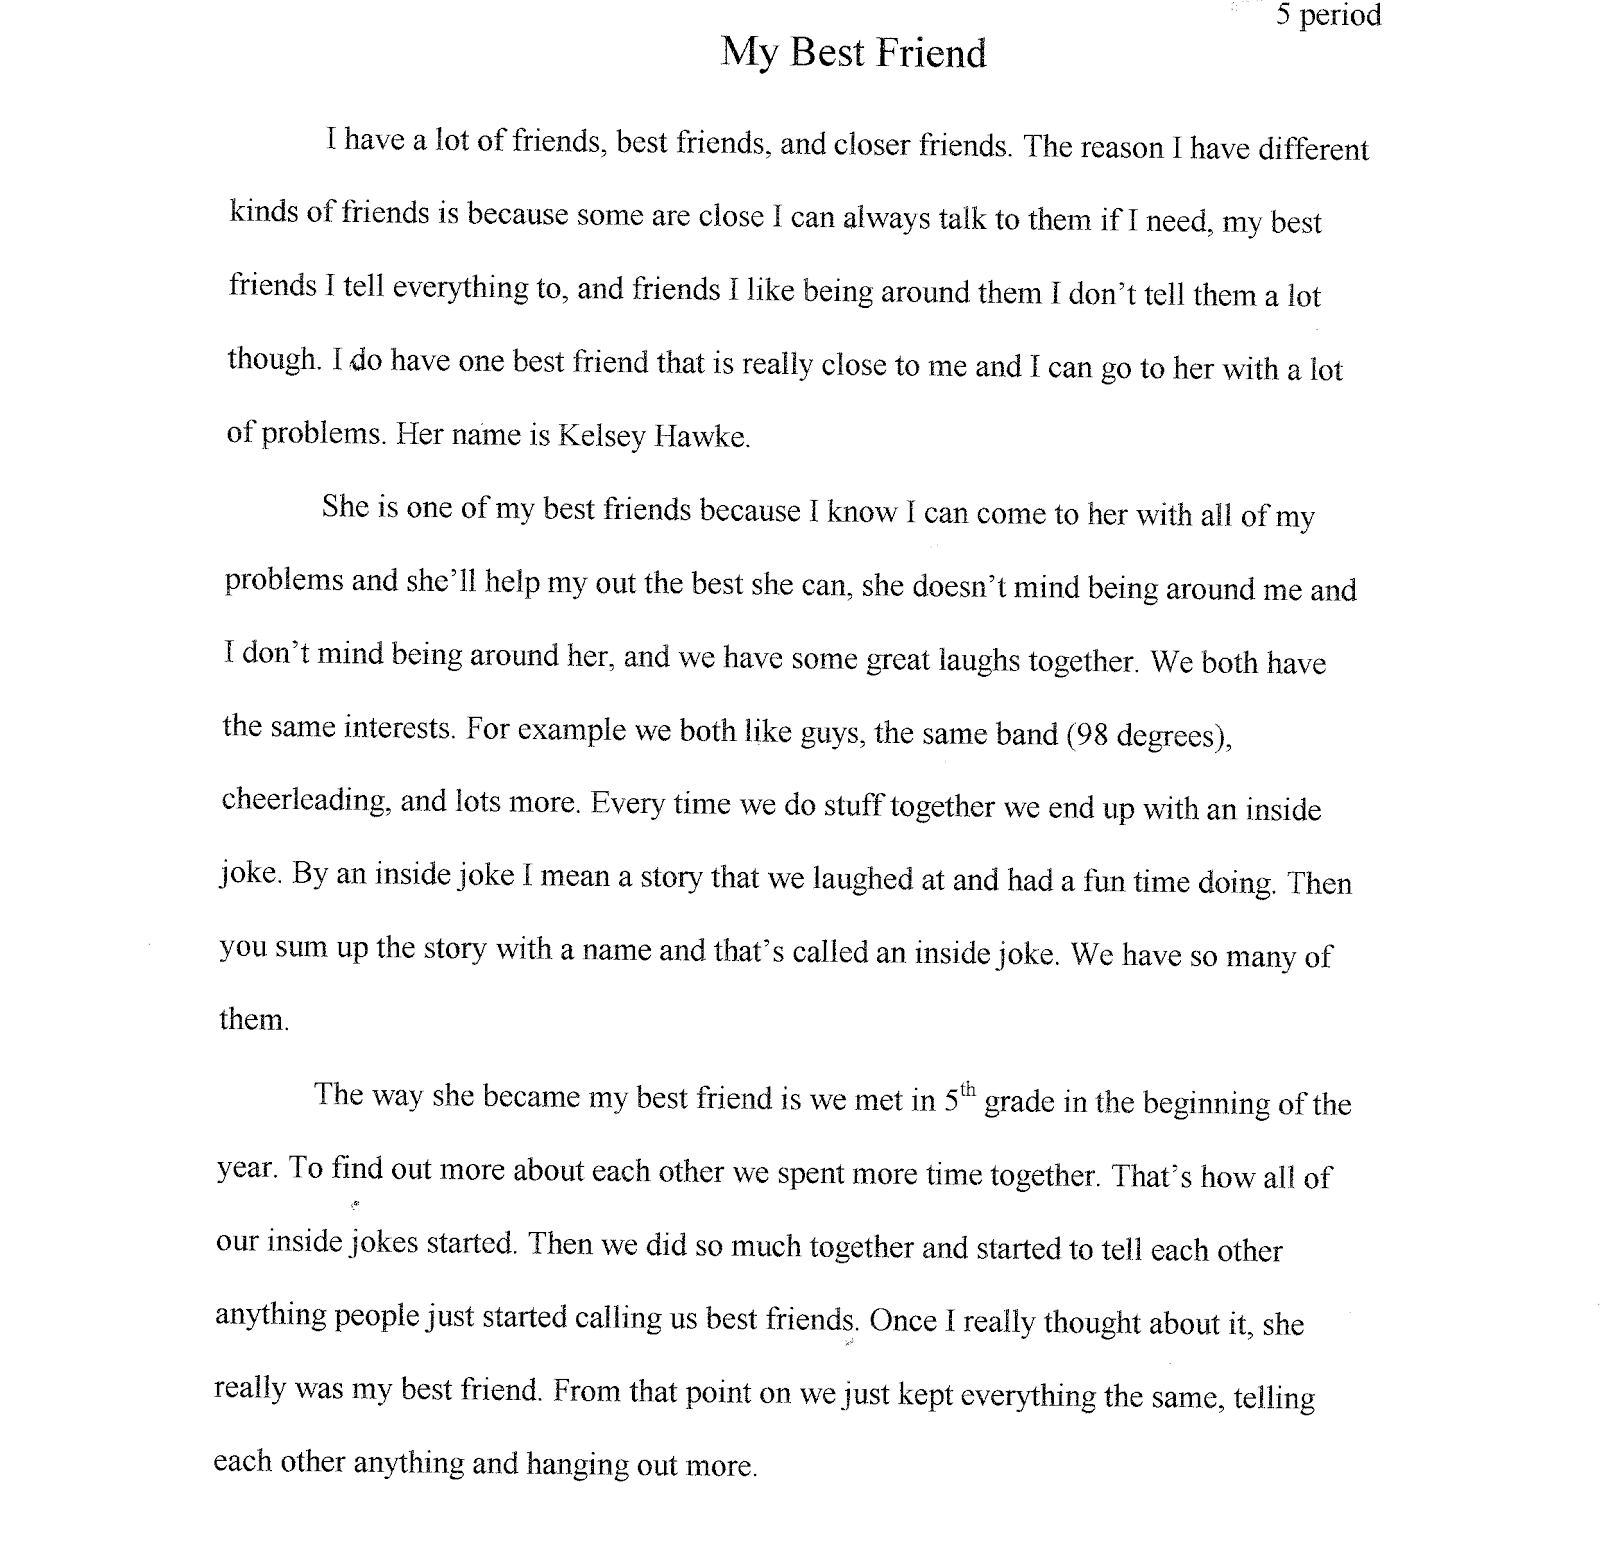 my best friend essay - Helom.digitalsite.co